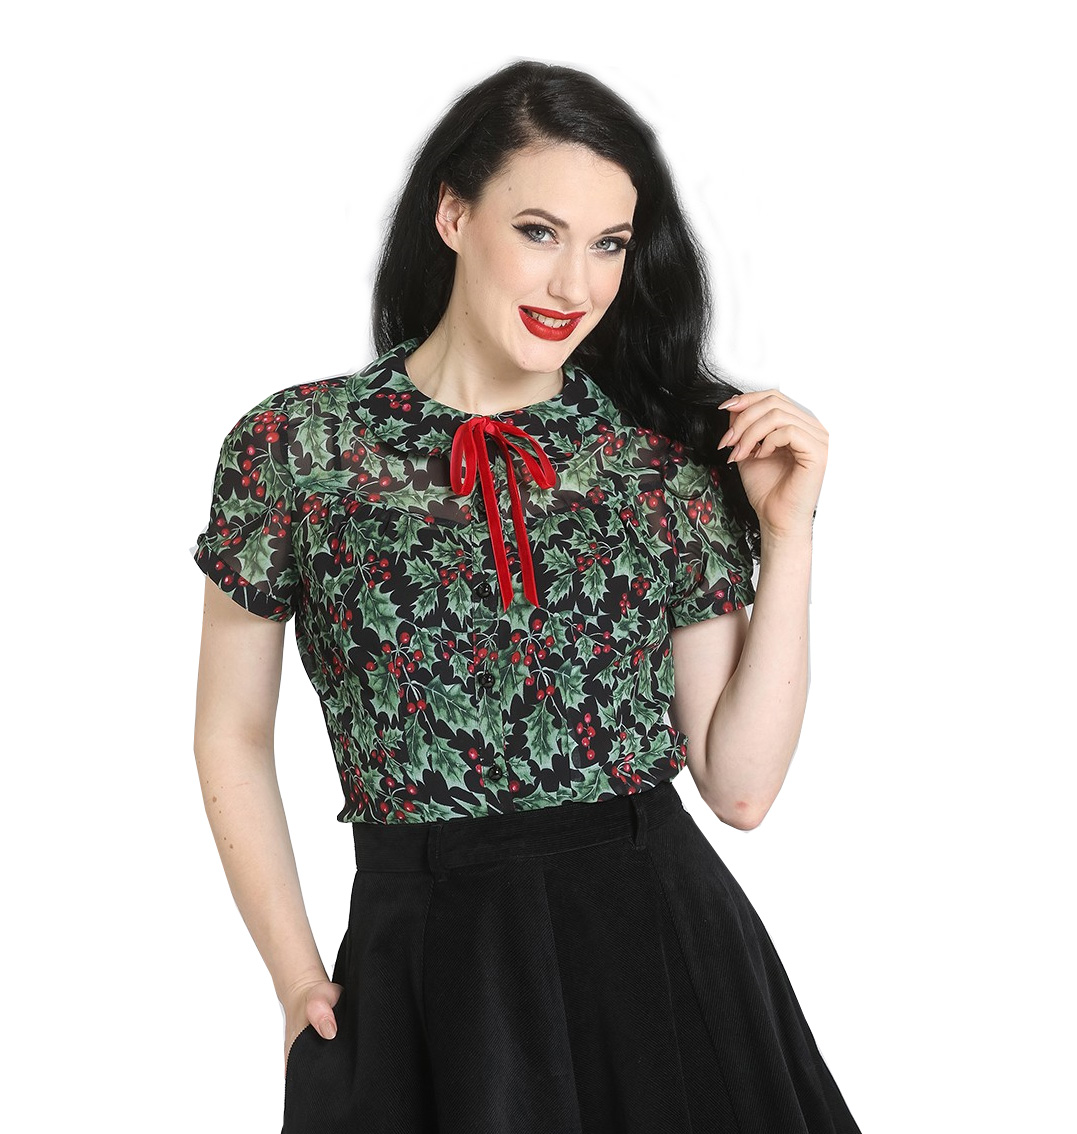 Hell-Bunny-50s-Shirt-Top-Christmas-Festive-HOLLY-Berry-Blouse-Black-All-Sizes thumbnail 13